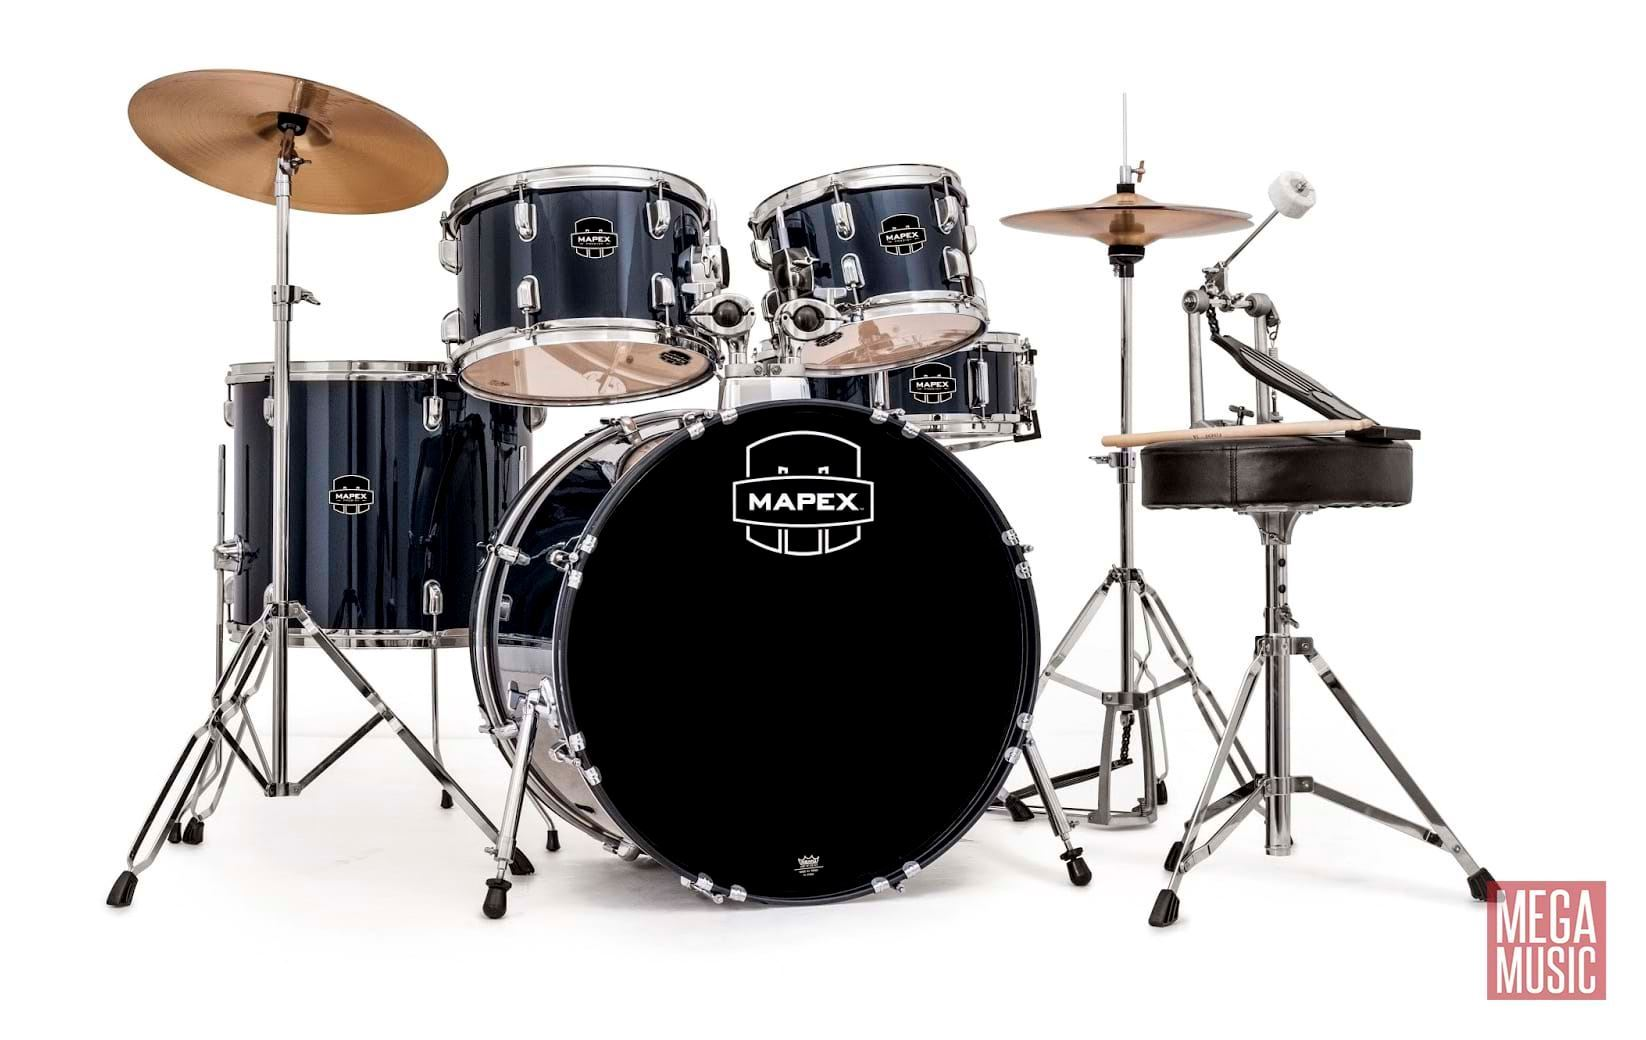 Mapex Prodigy 5 Piece Drum Kit Package